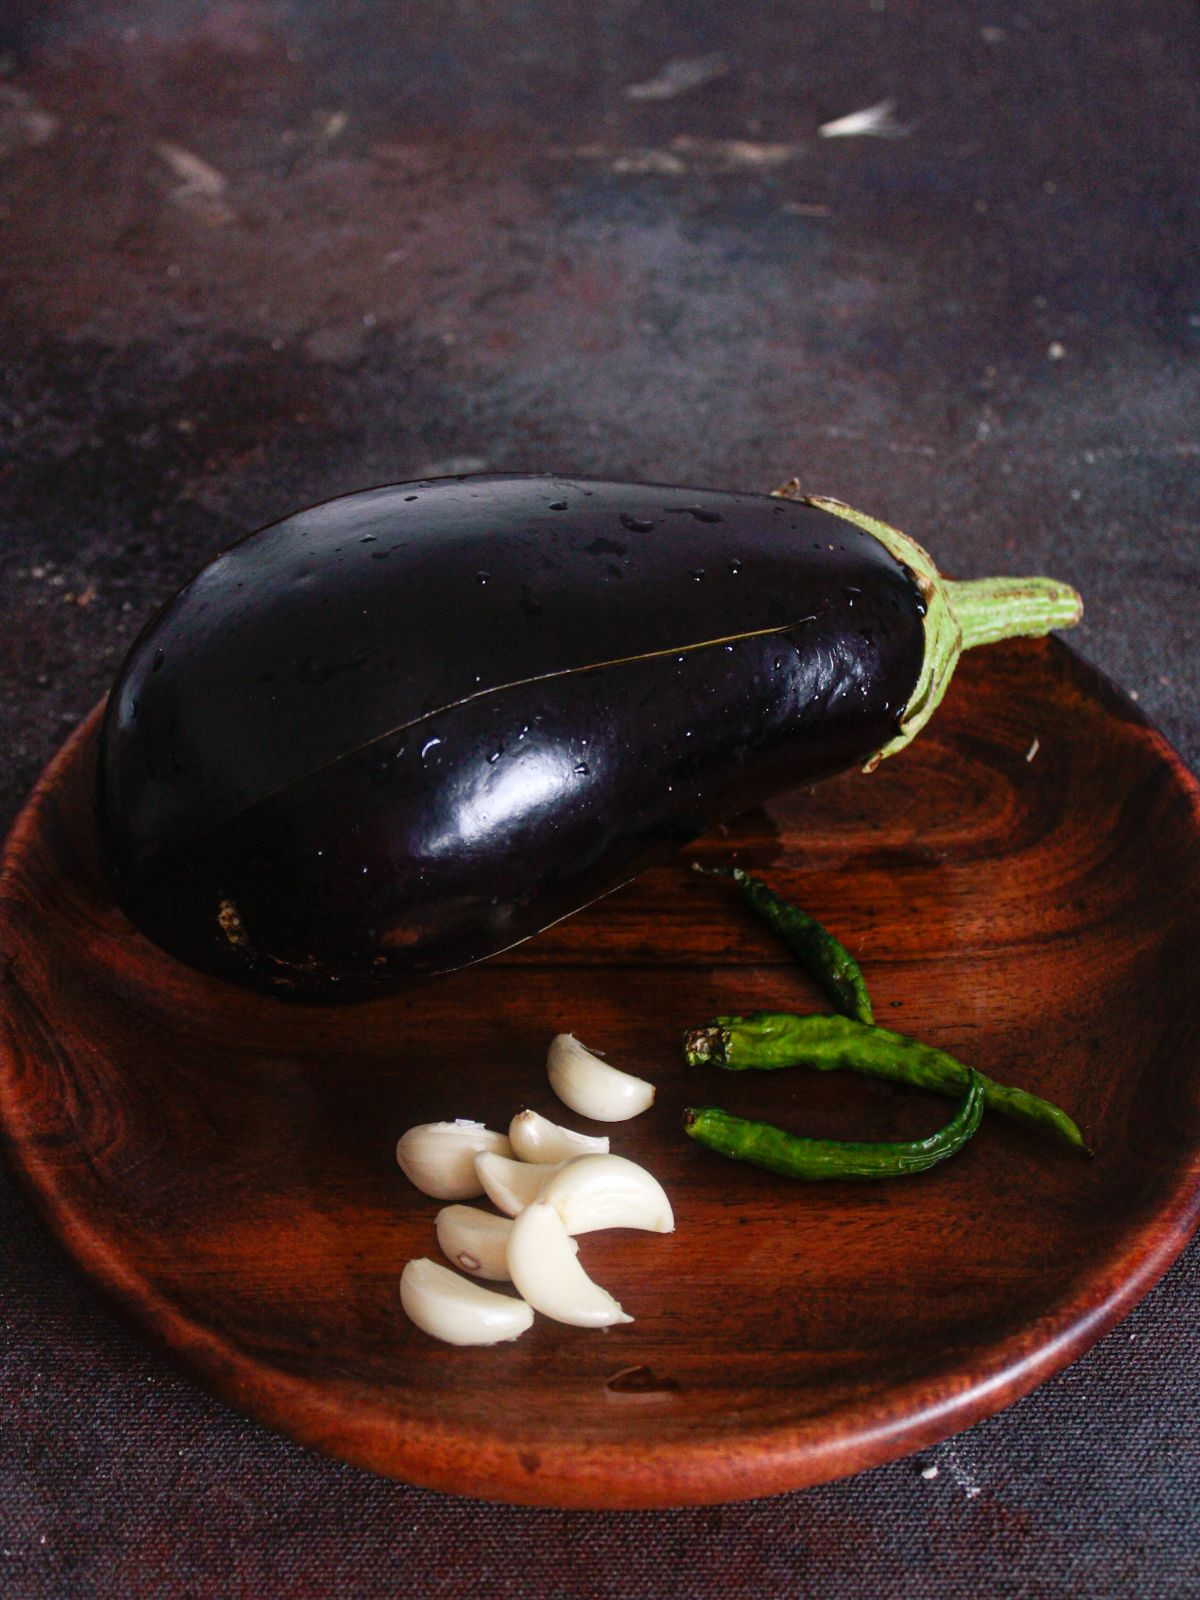 Wooden bowl holding eggplant, chiles, and garlic